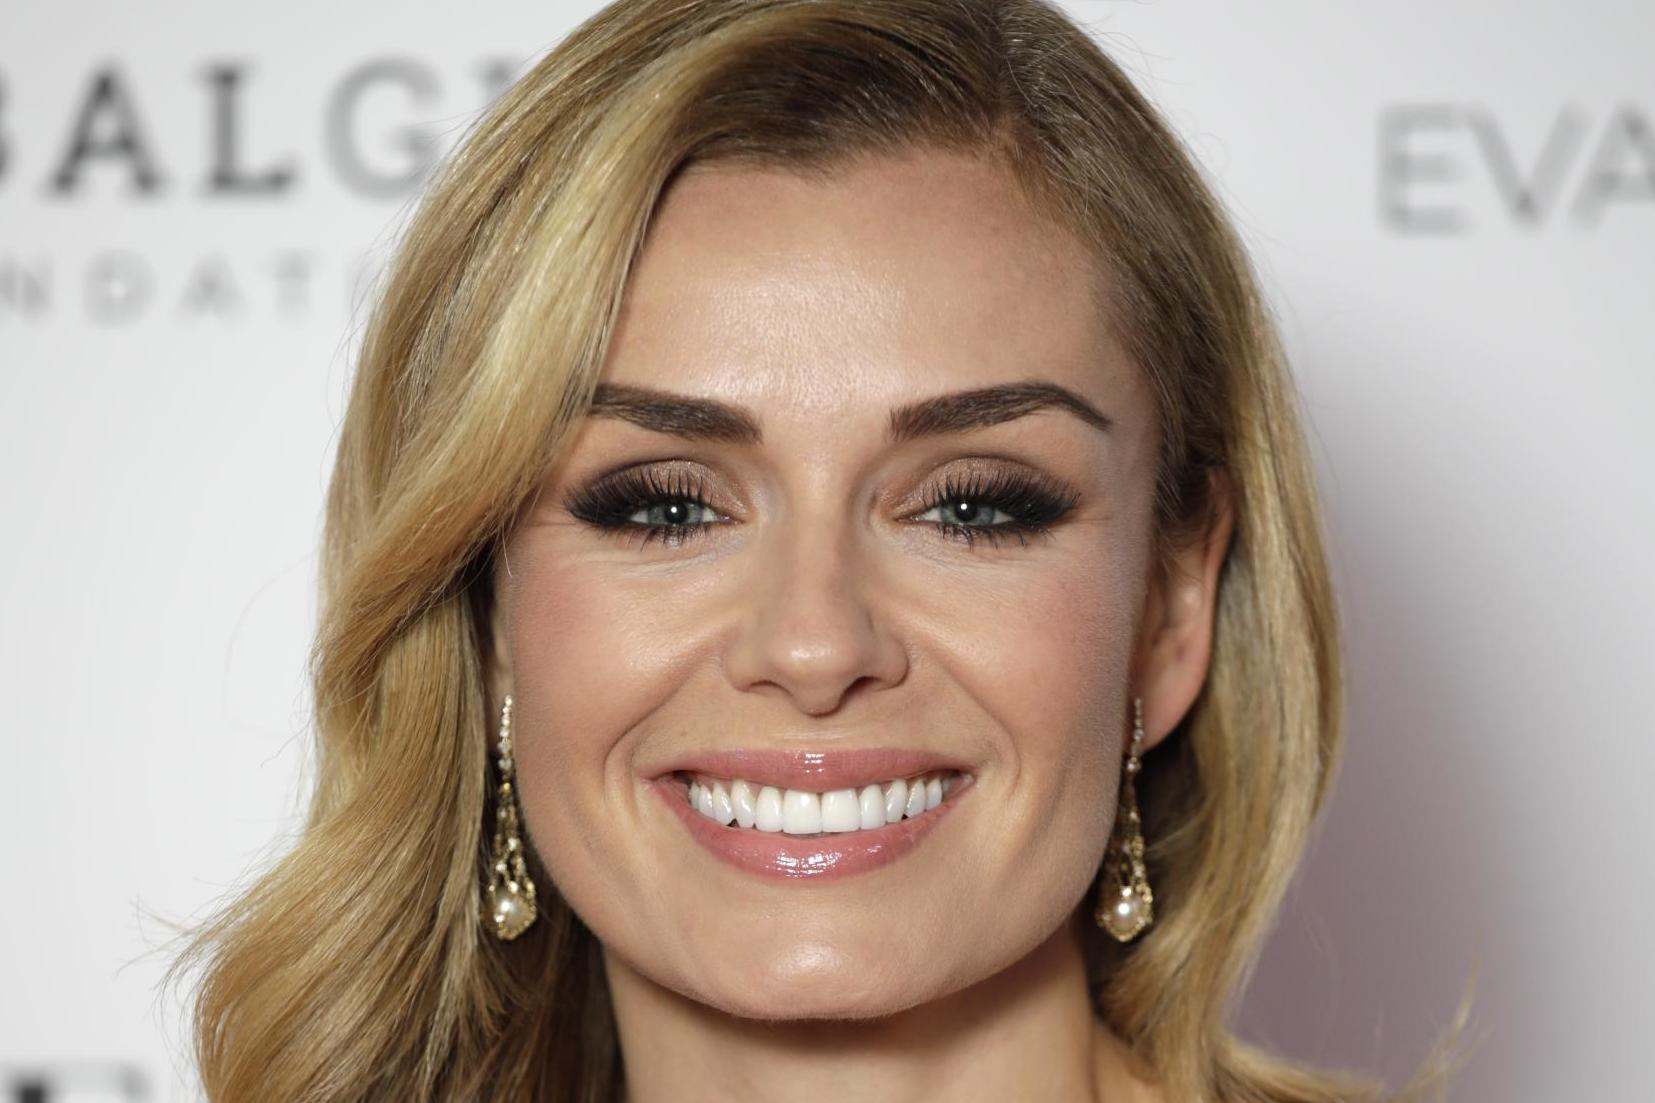 Opera star Katherine Jenkins mugged trying to stop another 'violent' mugging in London